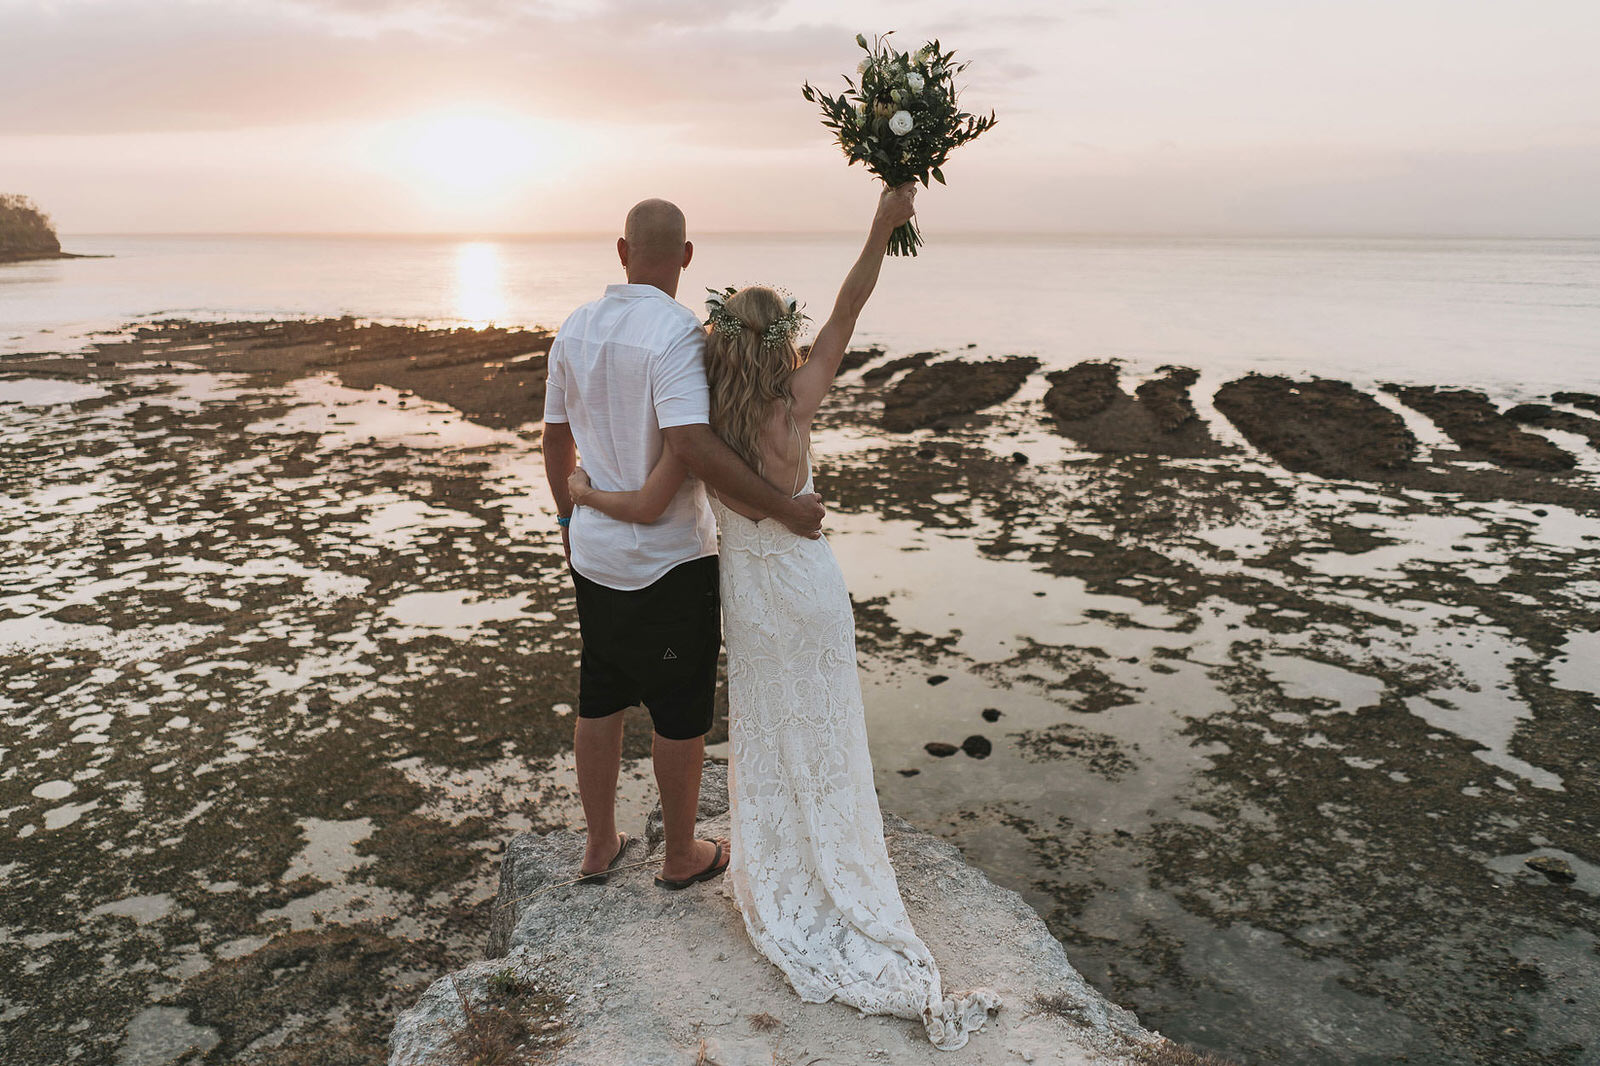 newfound-hai-tide-nusa-lembongan-bali-wedding-photographers-130